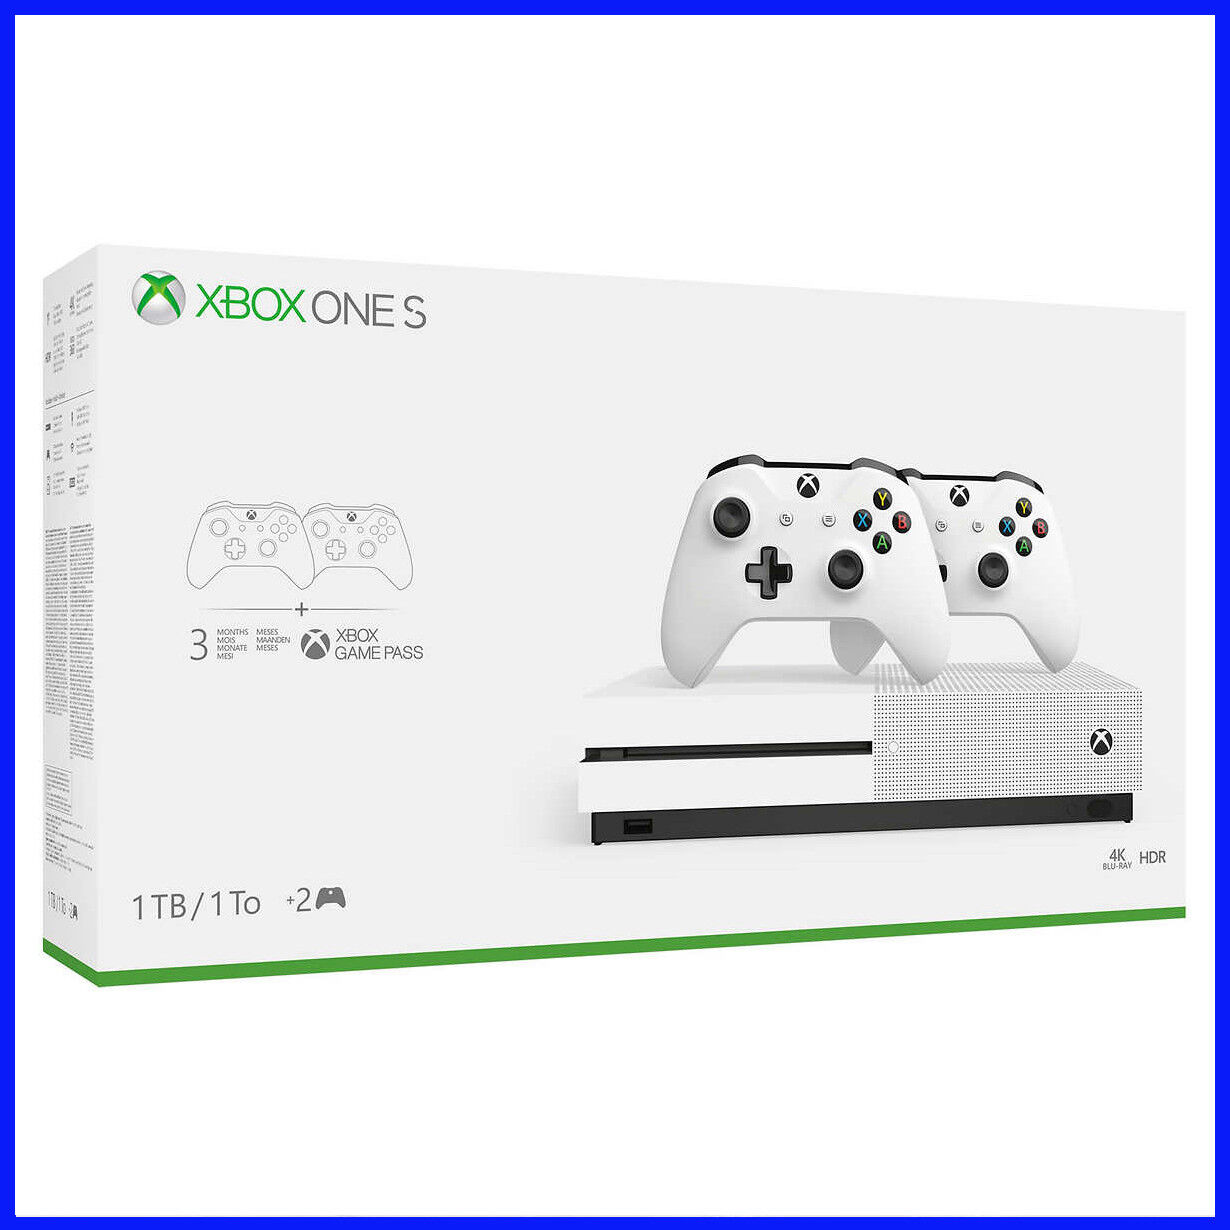 [No Tax]  Xbox One S 1TB CONSOLE Bundle, 2 Controllers, 3 Month Game Pass